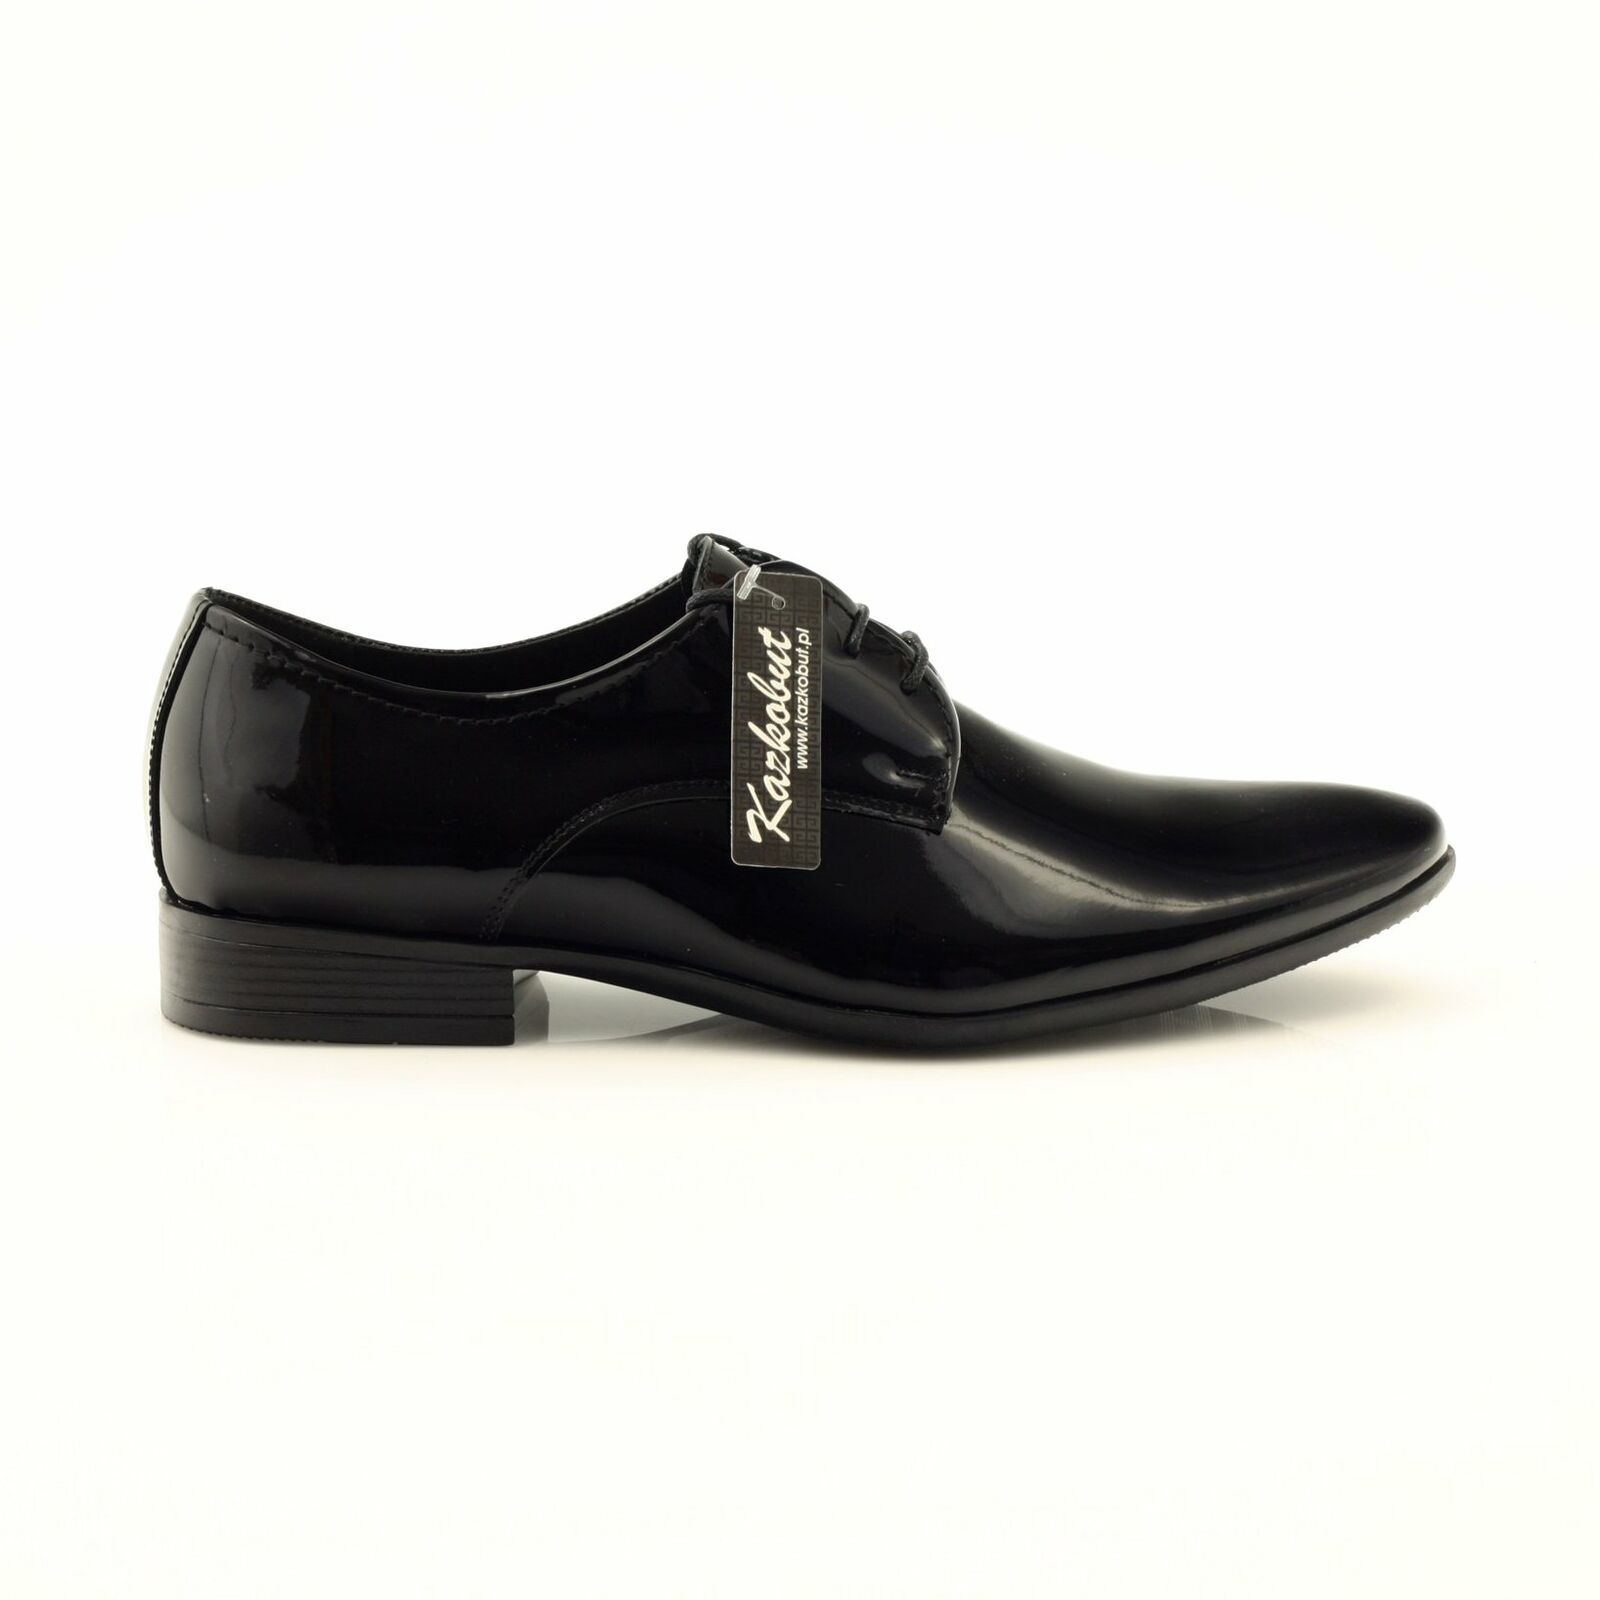 Classic men's shoes Kazkobut 2620 black black – Shoes